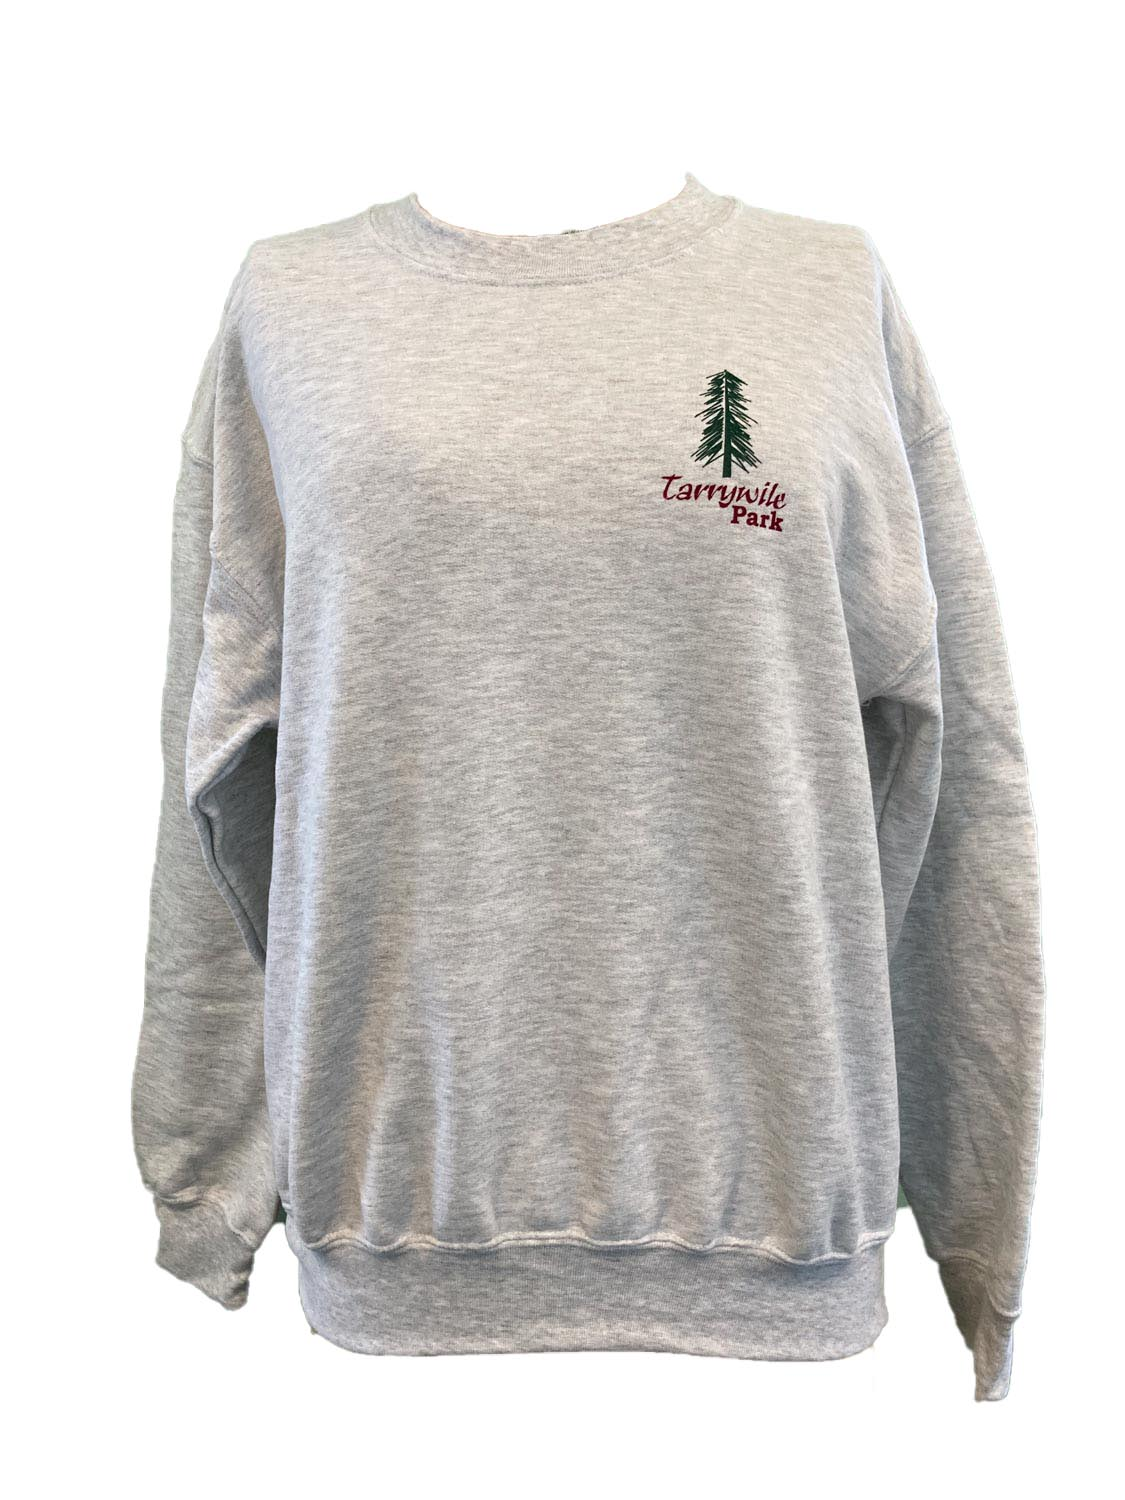 grey sweatshirt with tarrywile park and a tree